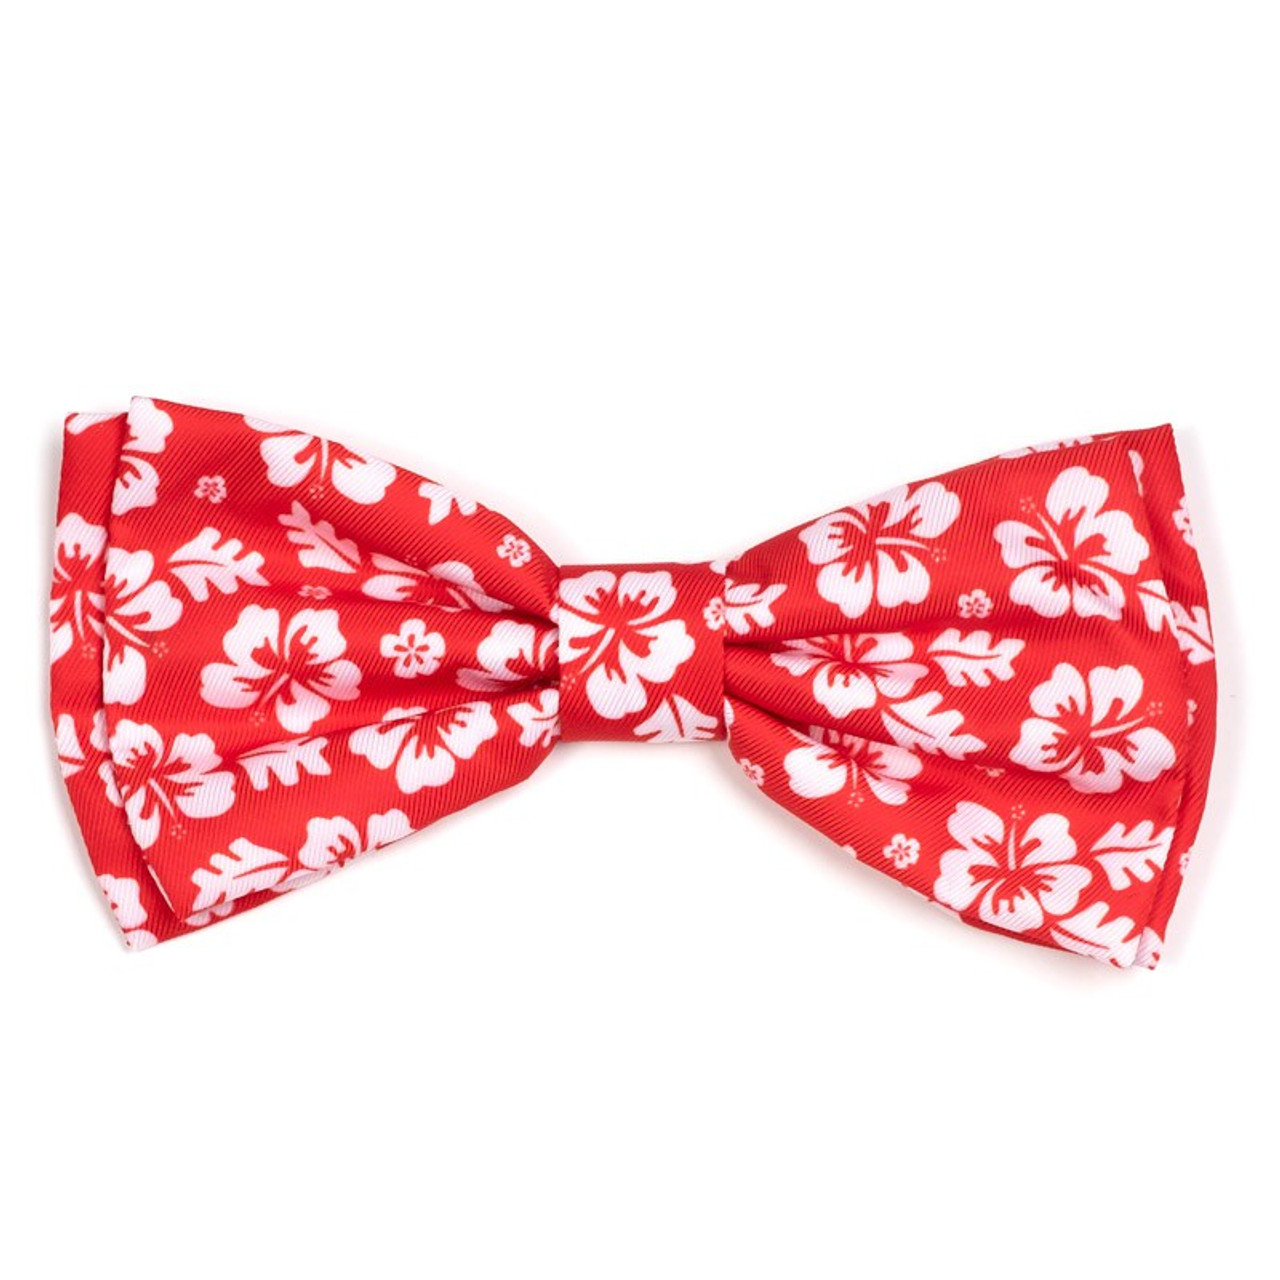 Bow Tie For Dog Bow Tie For Dogs Dog Bowtie Hawaiian Aloha Bow Tie for Pets